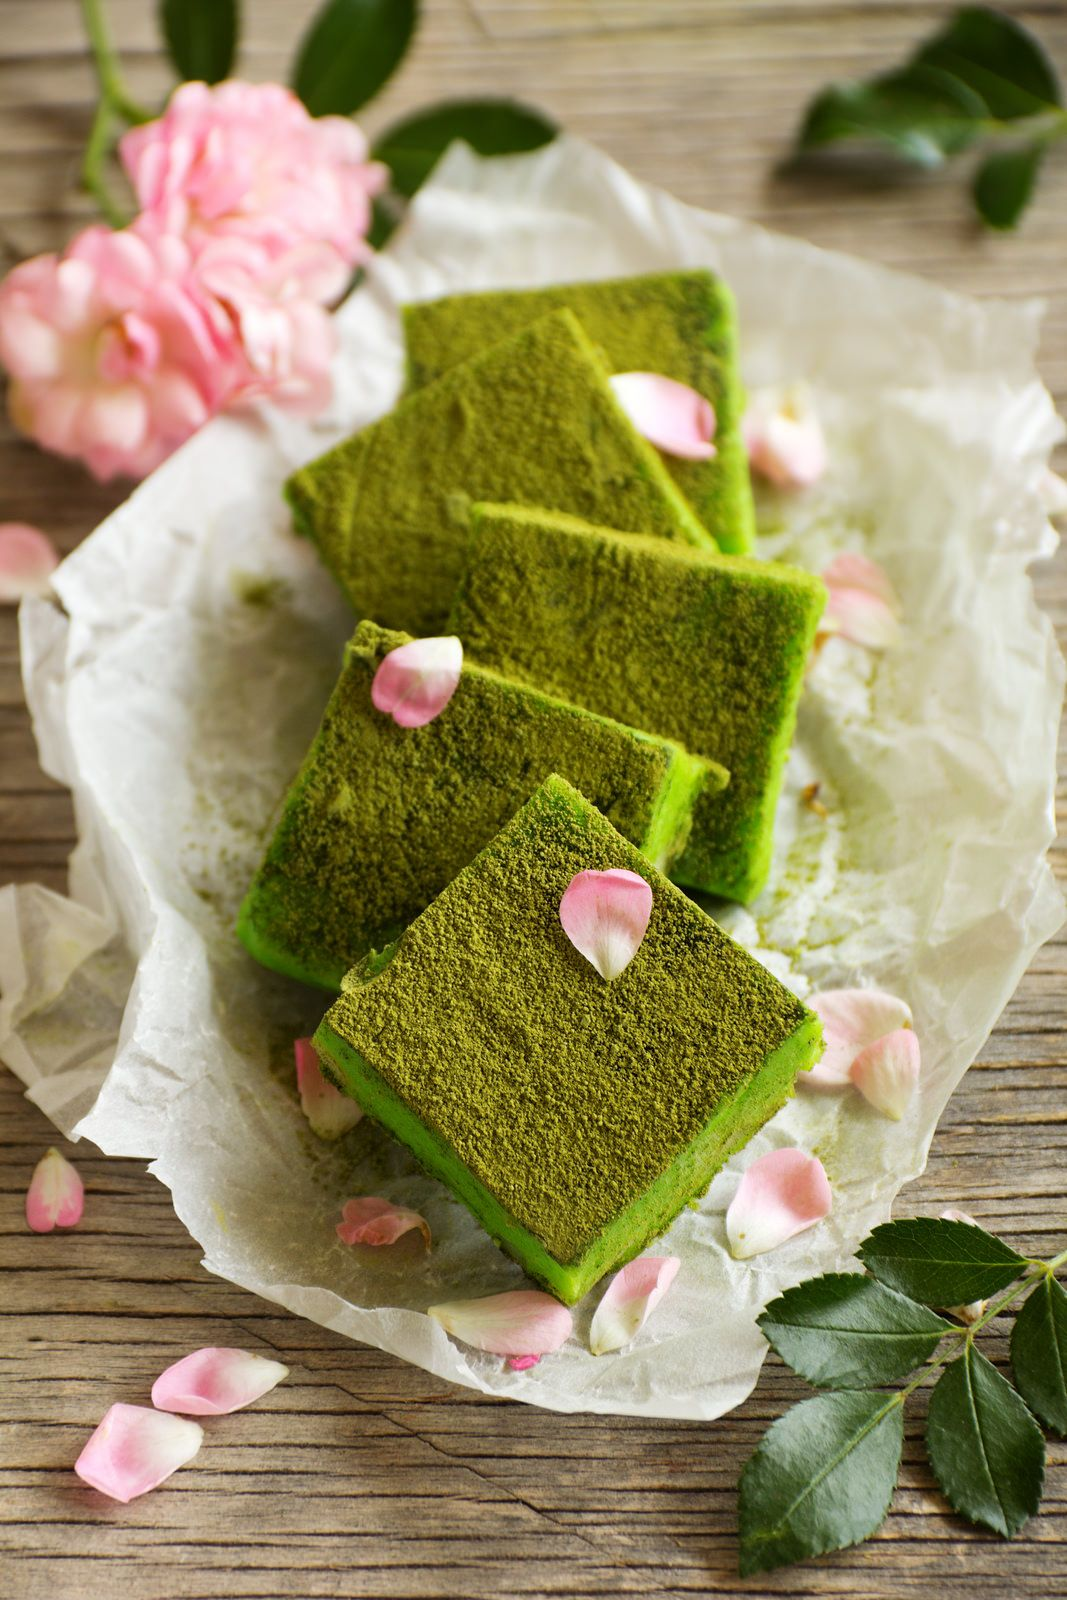 candy white chocolate with matcha